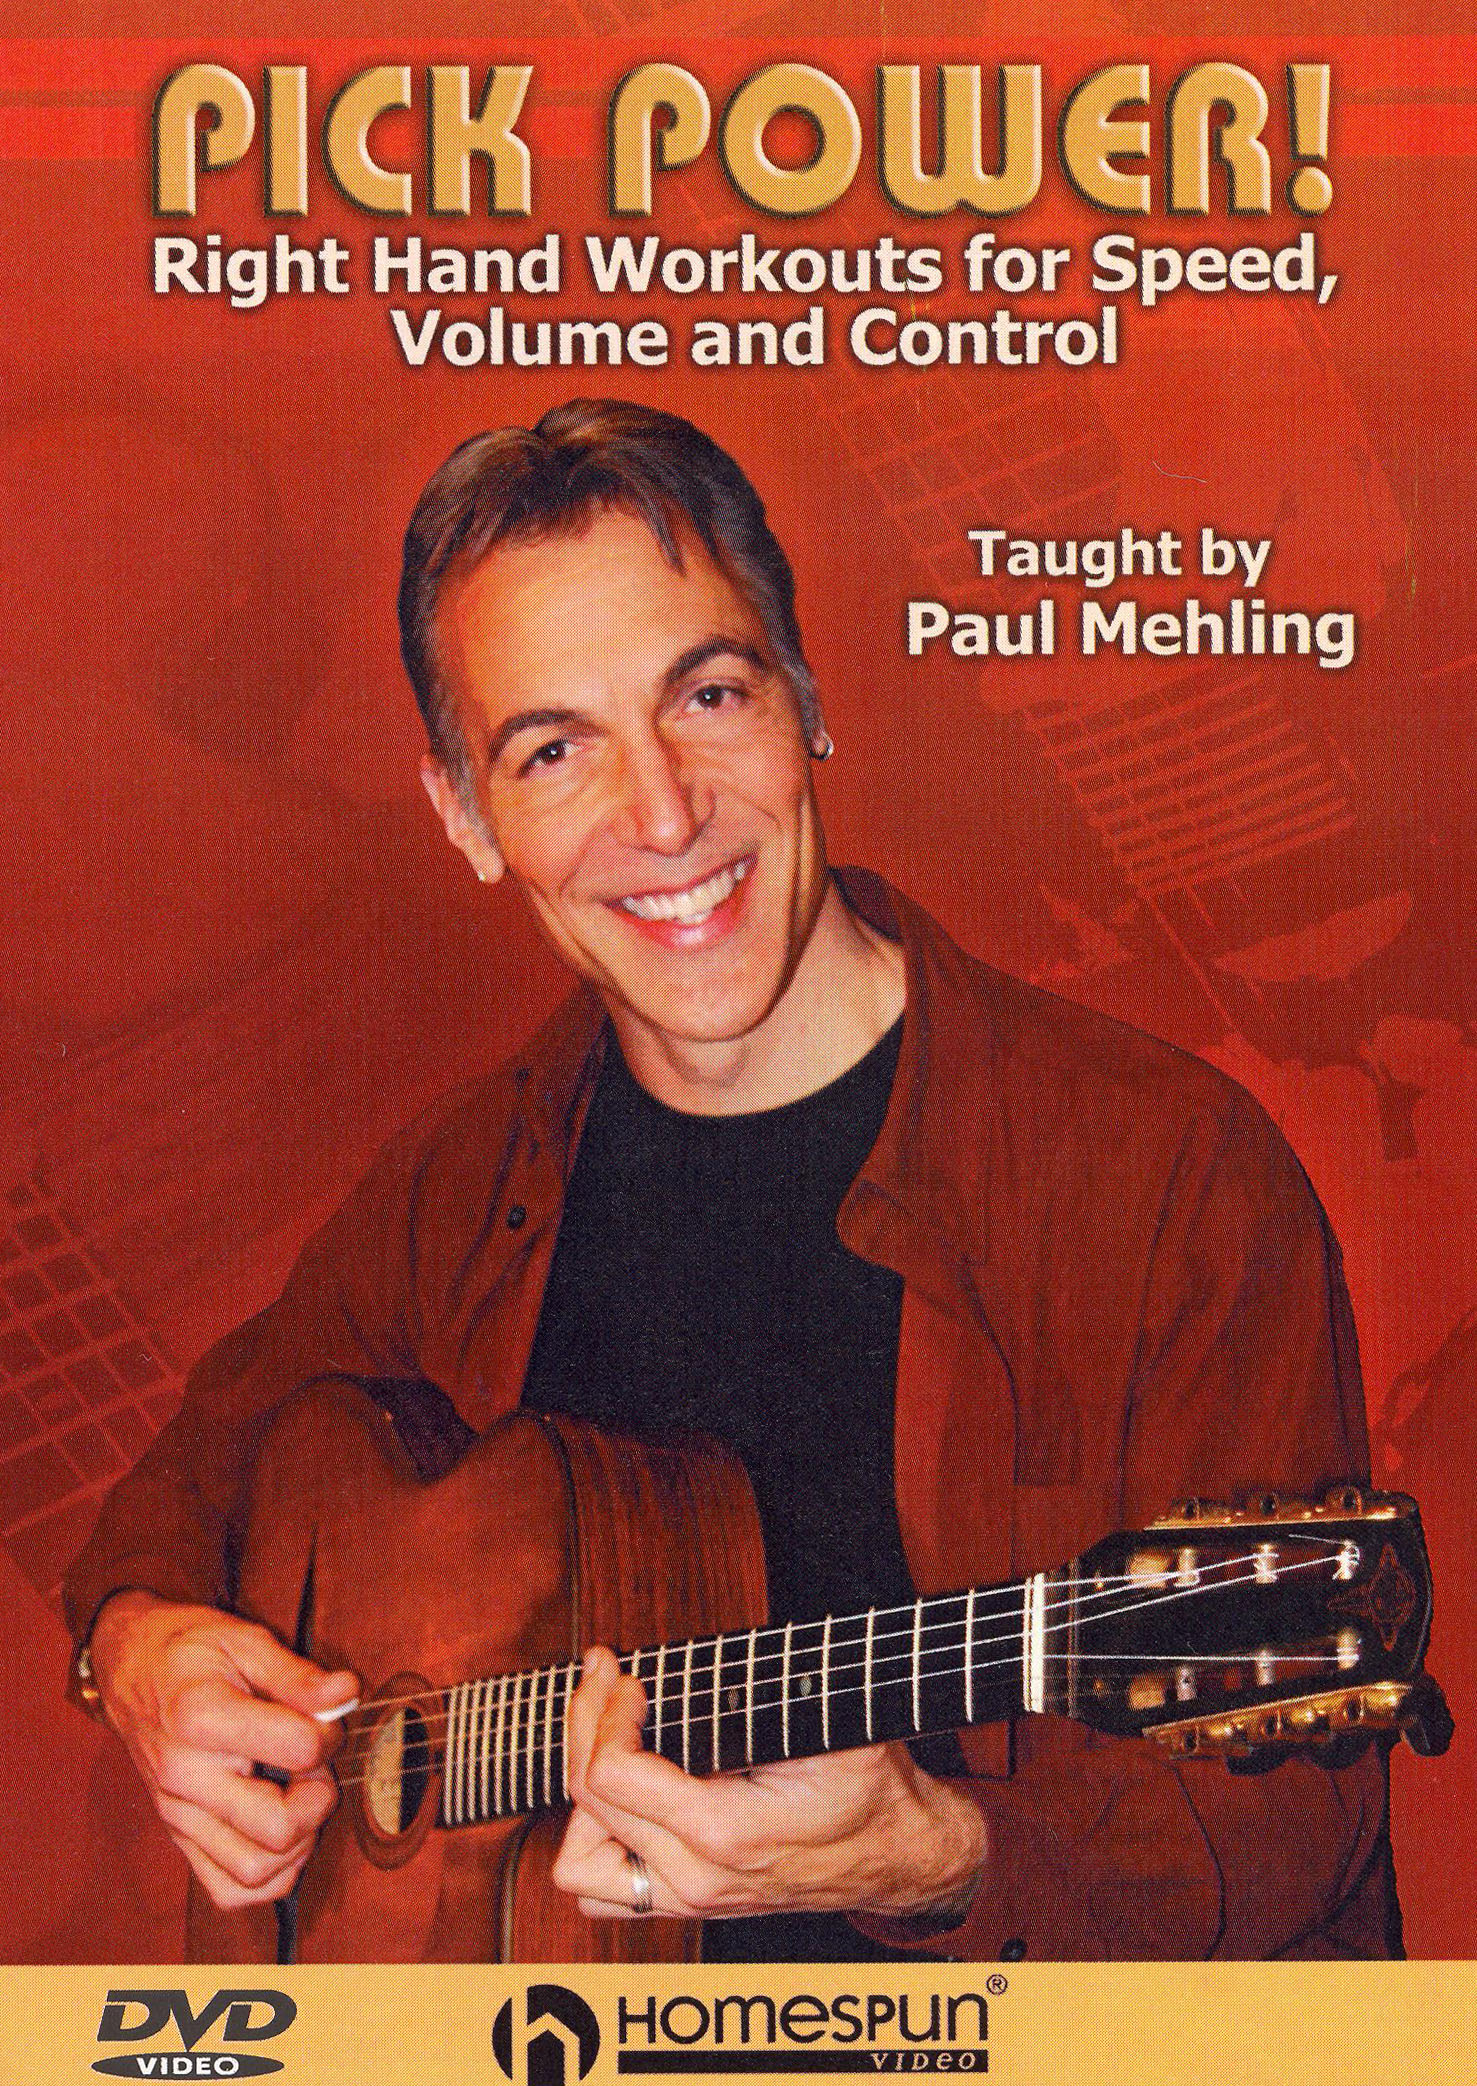 Paul Mehling: Pick Power - Right Hand Workouts for Speed, Volume and Control